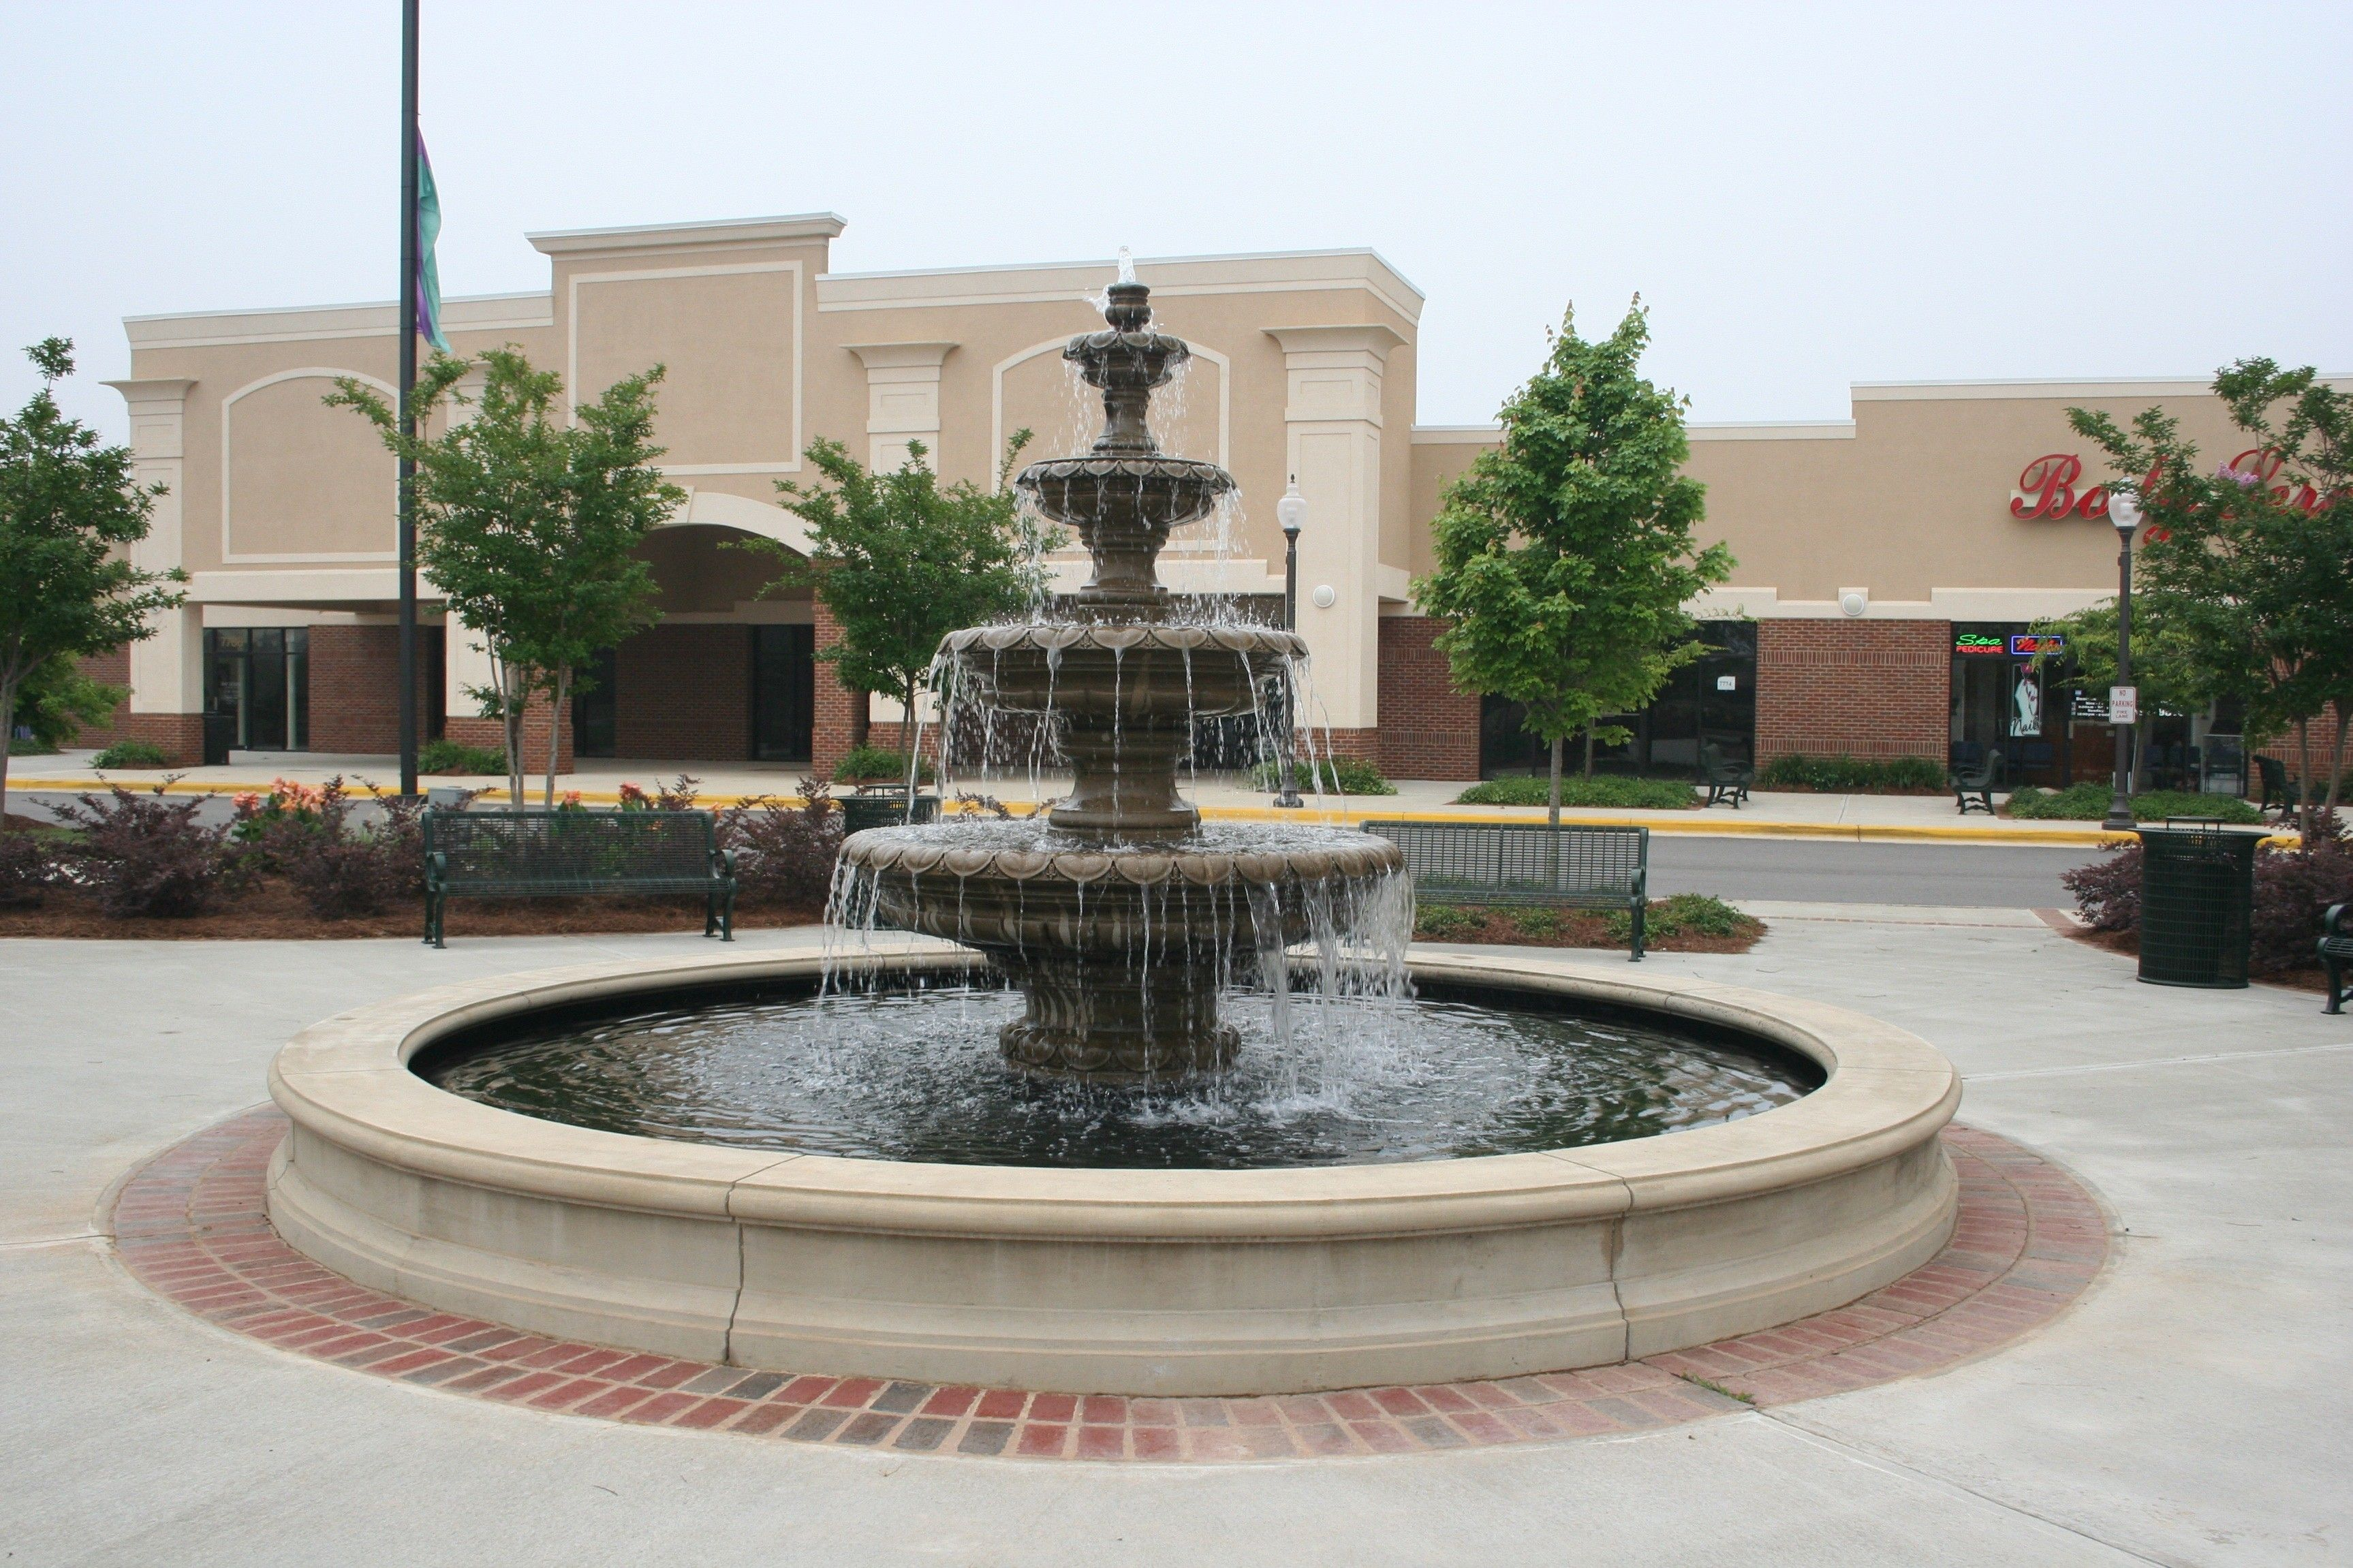 architectural fountains | 18' Fountain Pool with Four Tier Classic Leaf